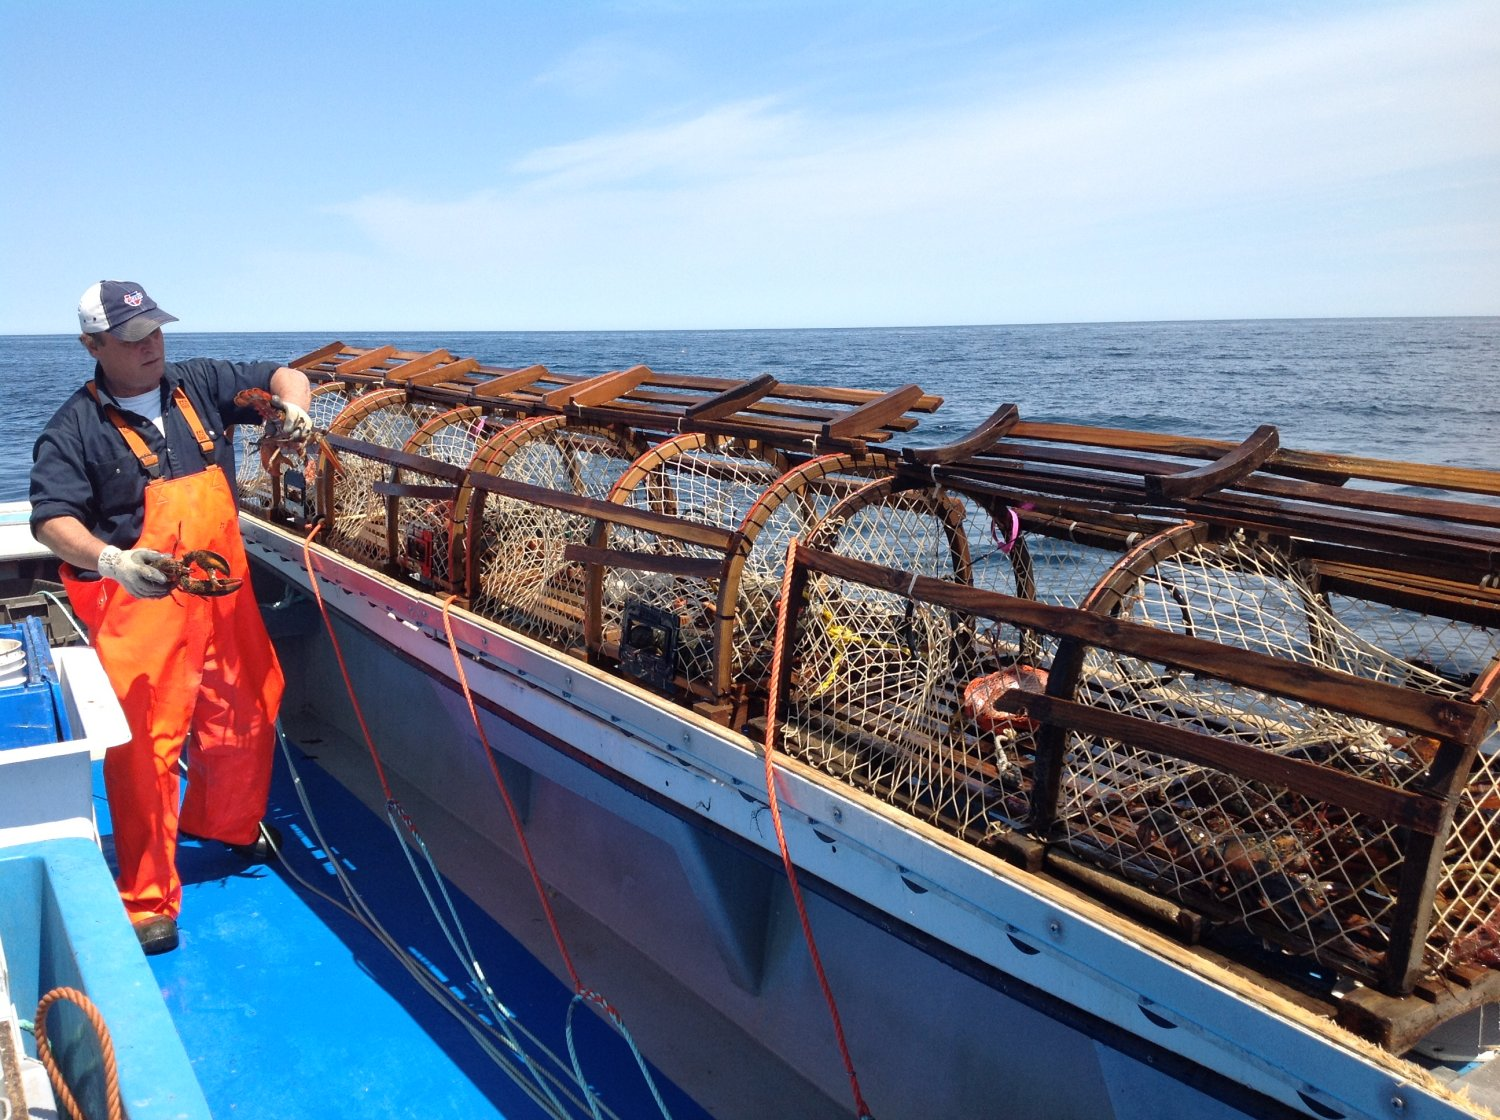 From gourmet eating to fishing for gourmet lobsters cape breton s seafood bounty